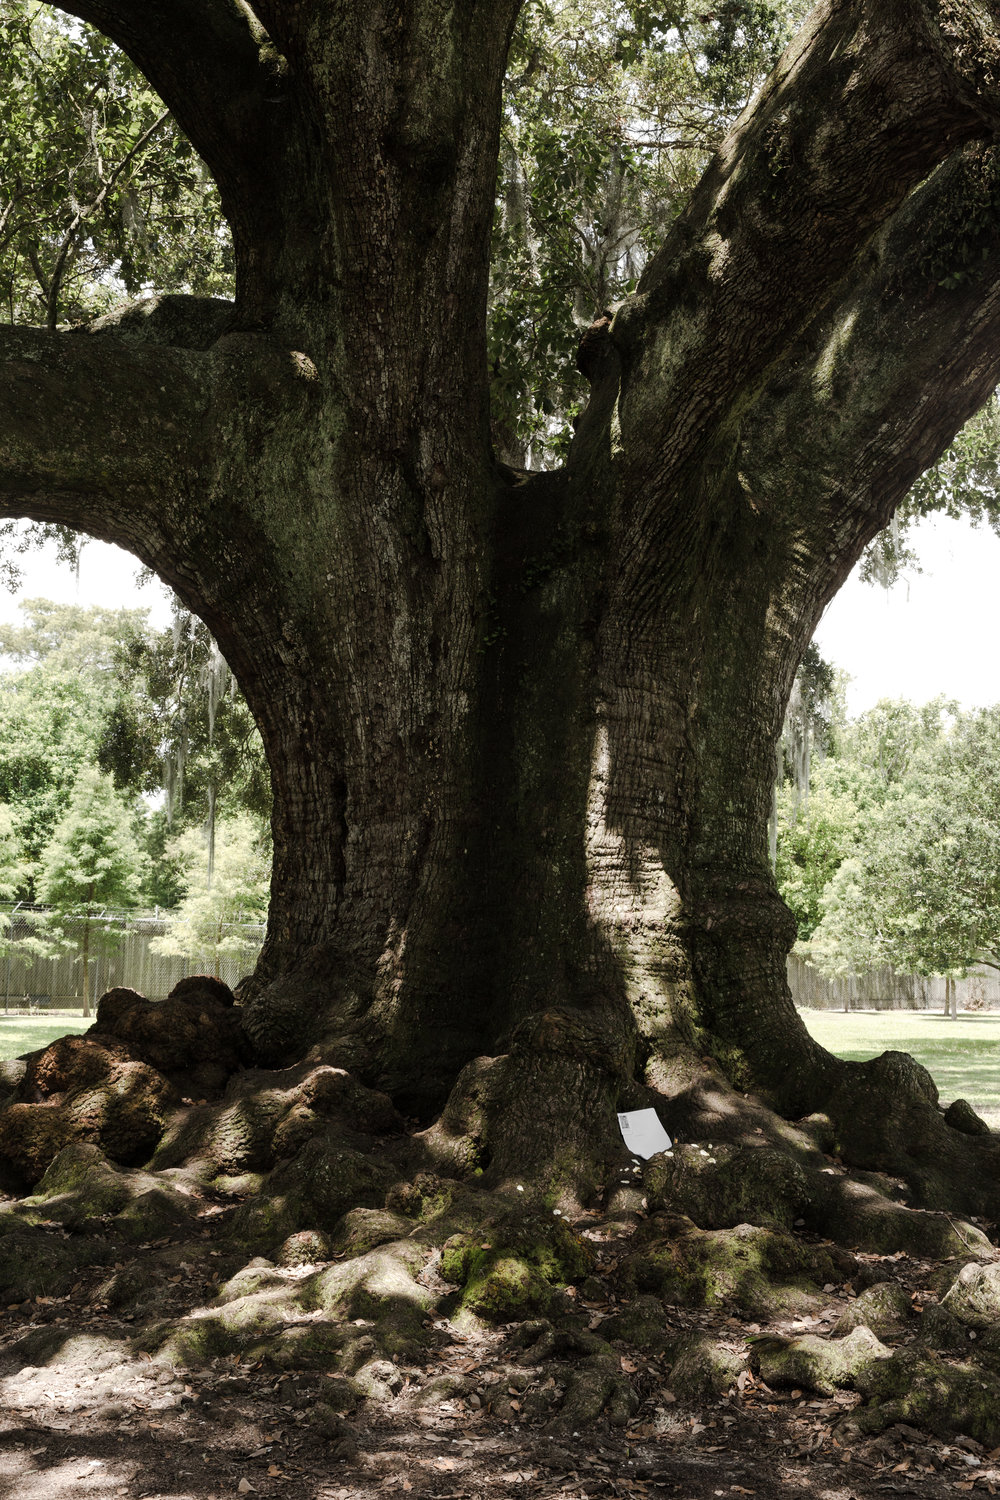 Tree of Life - Audubon Park